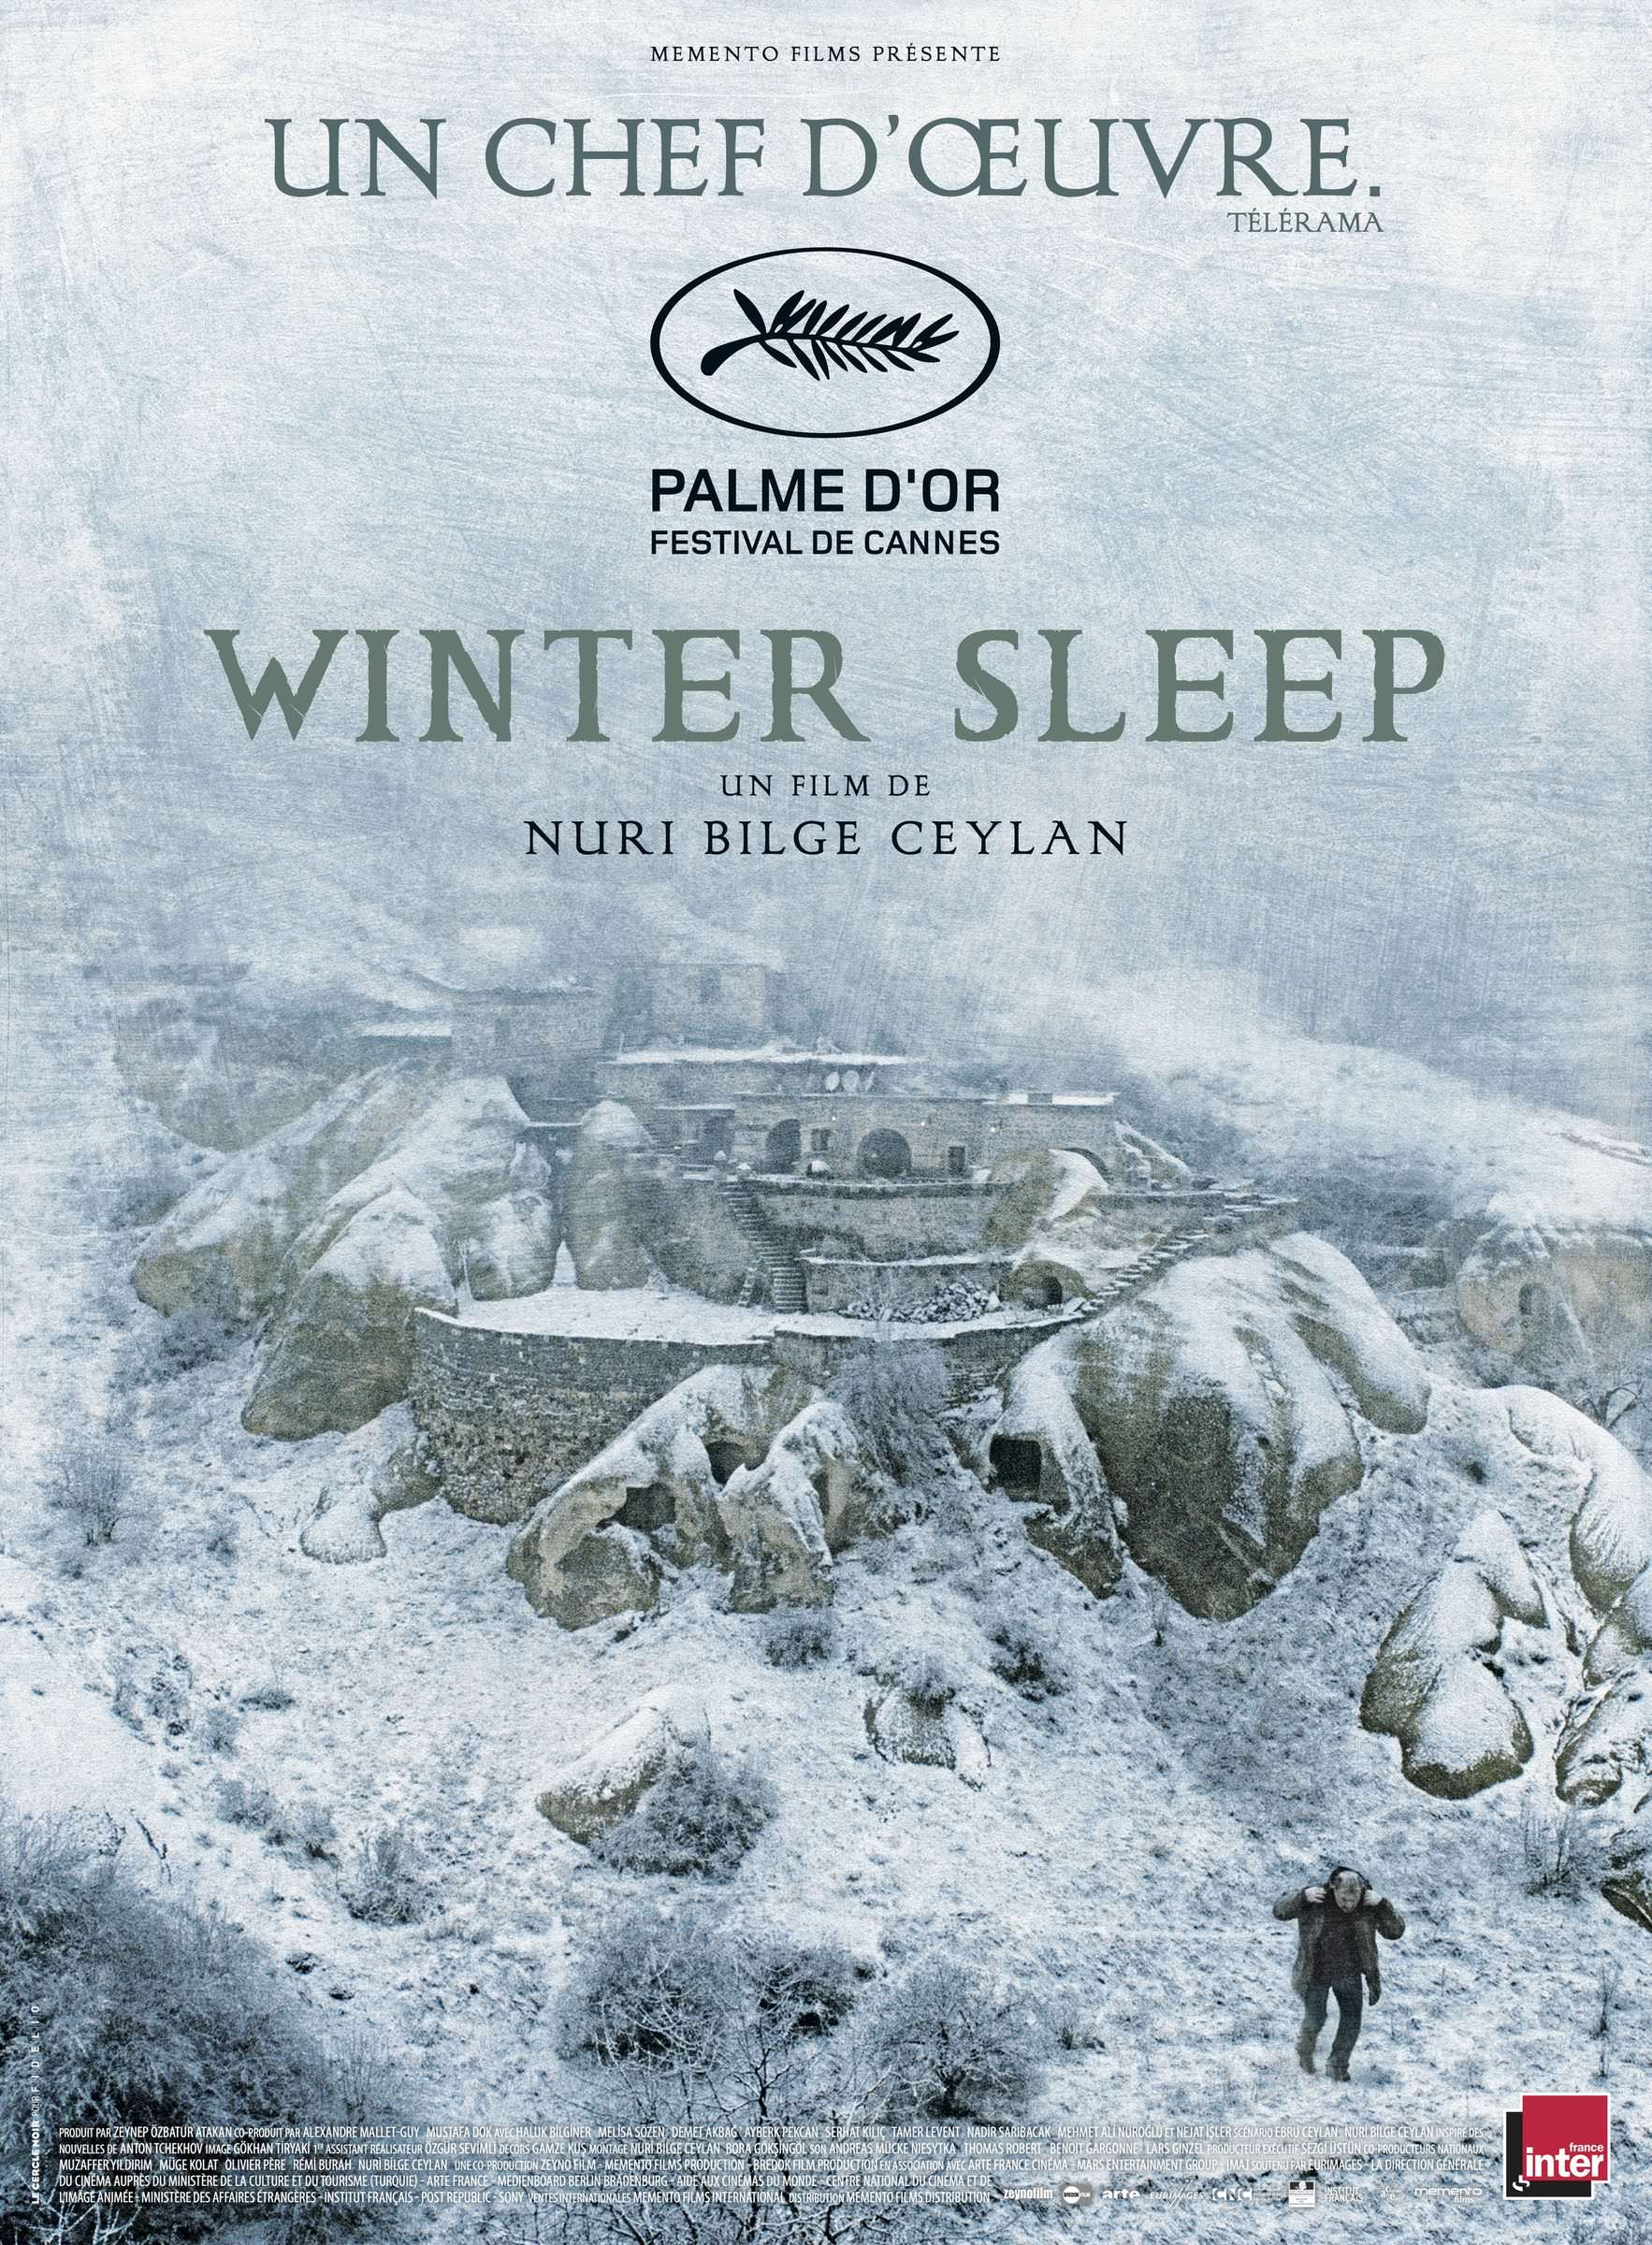 Winter sleep ceylan